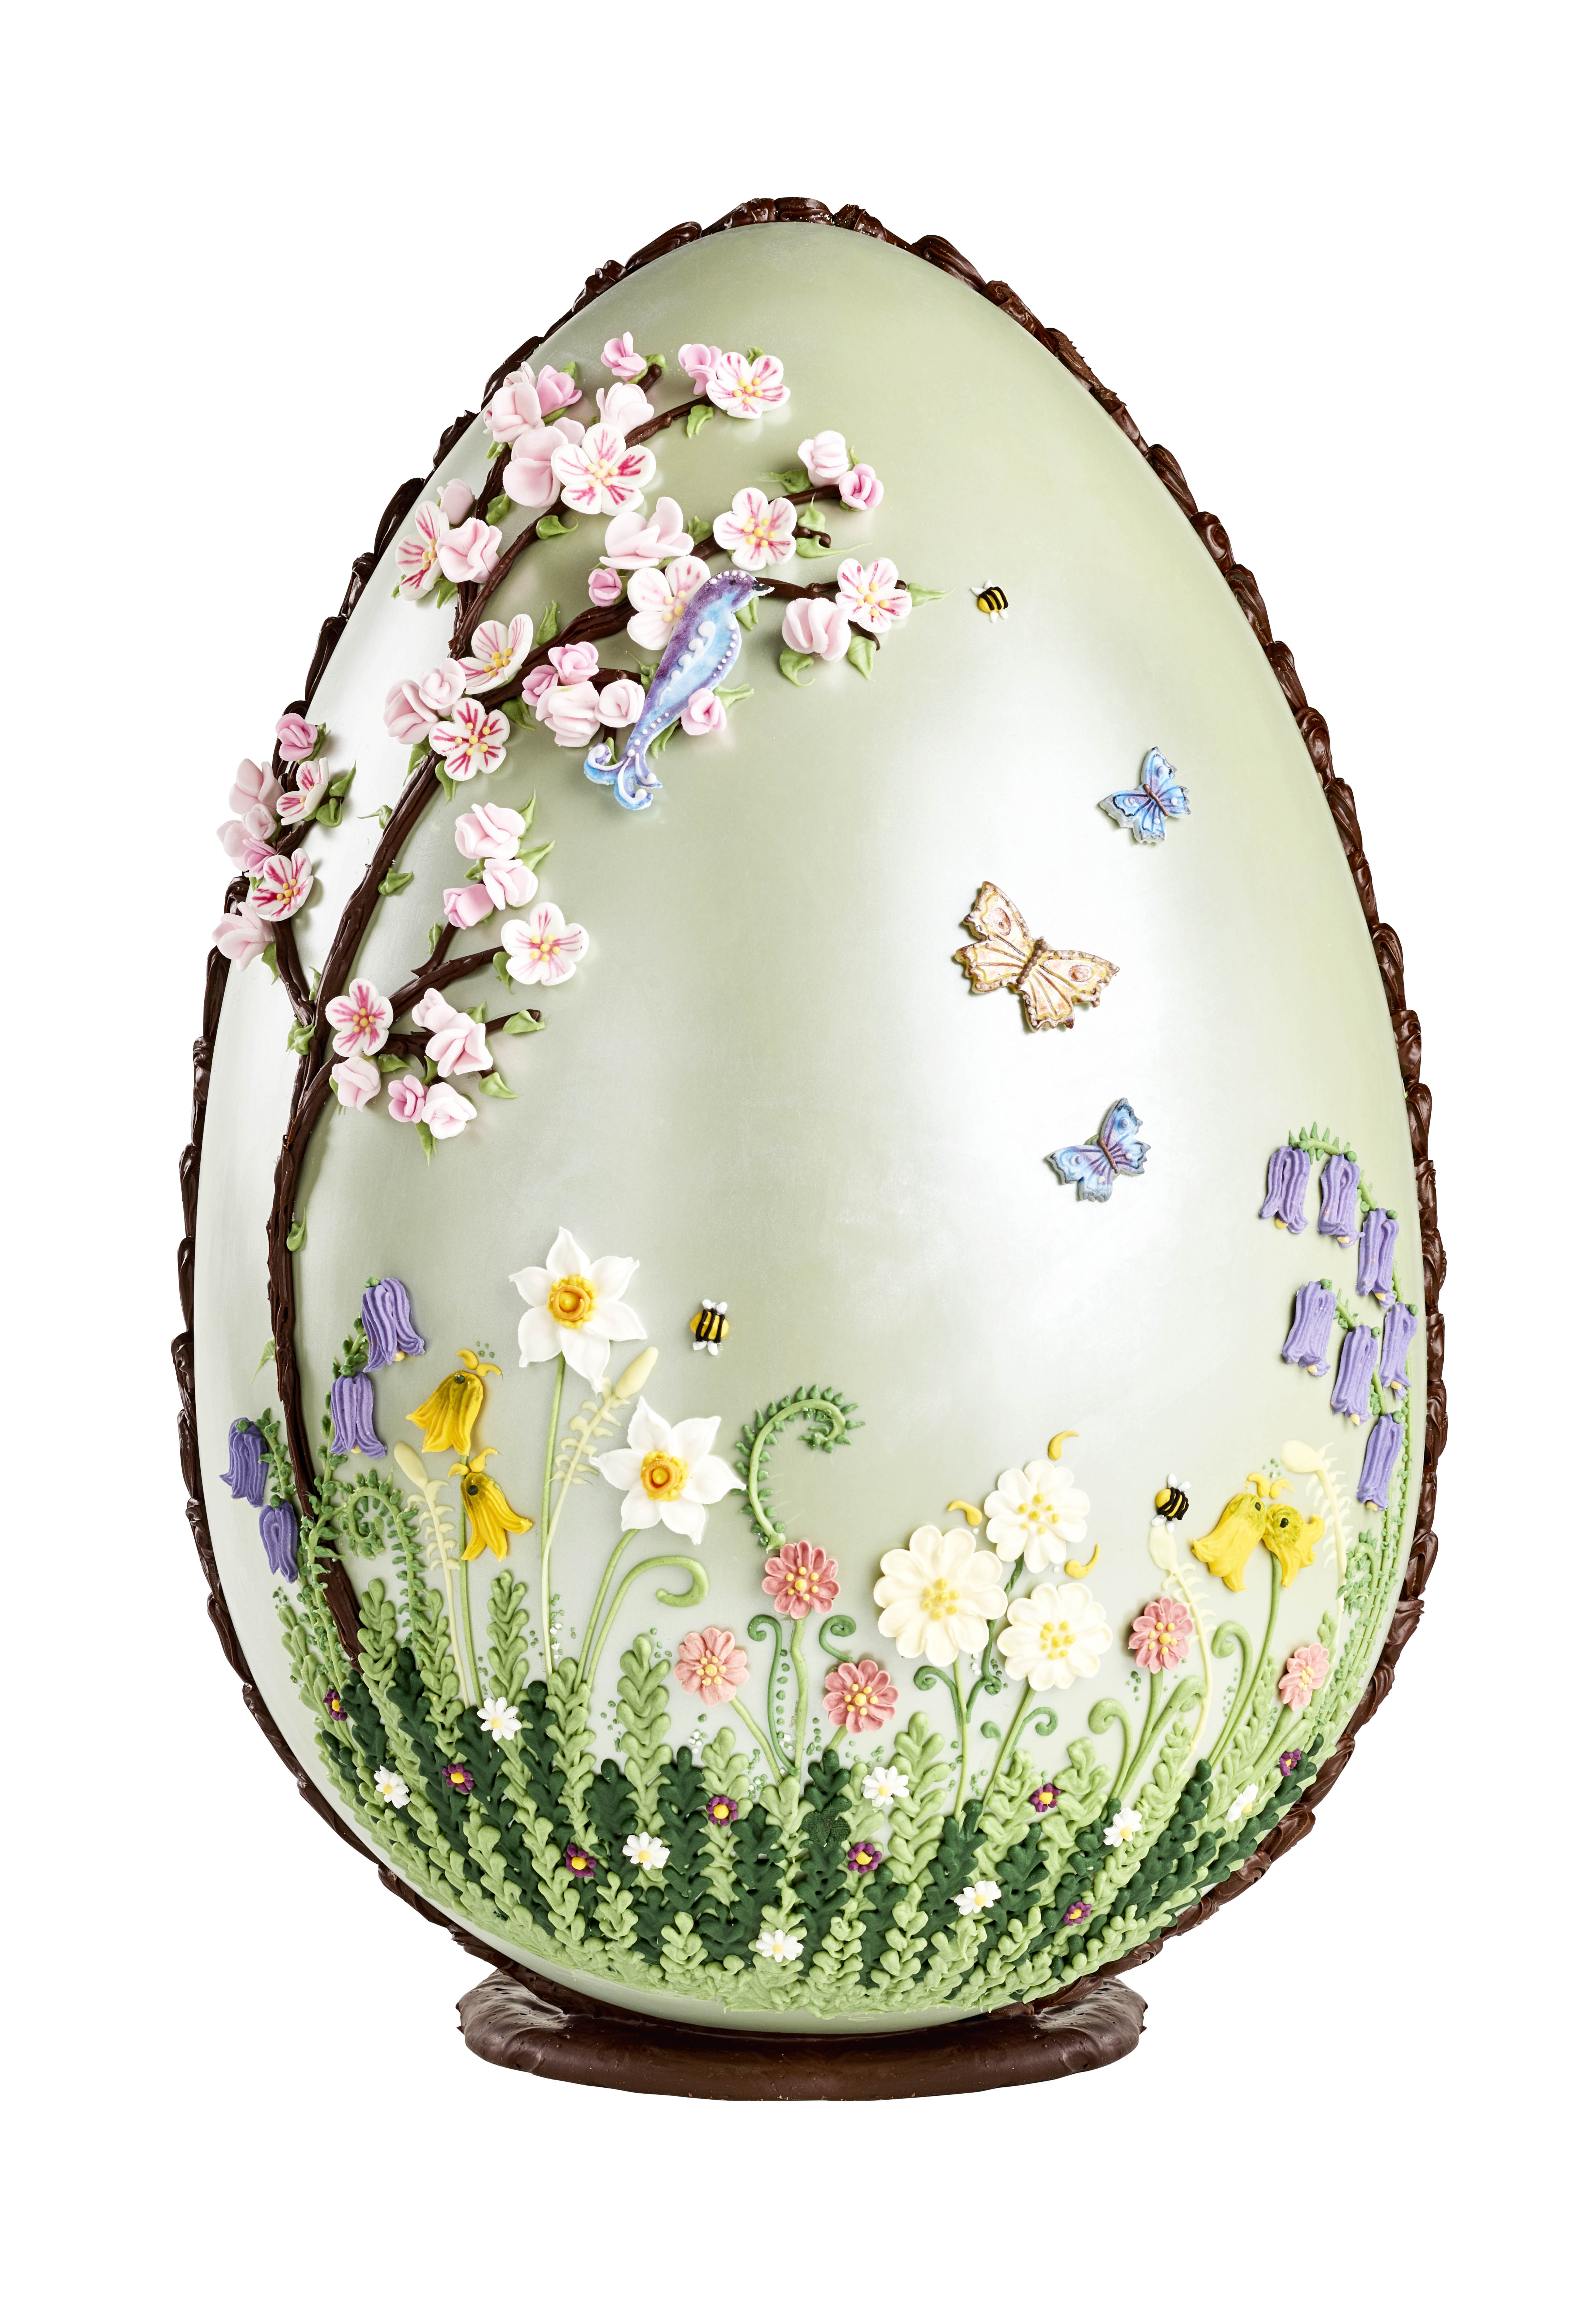 Bettys imperial in bloom egg